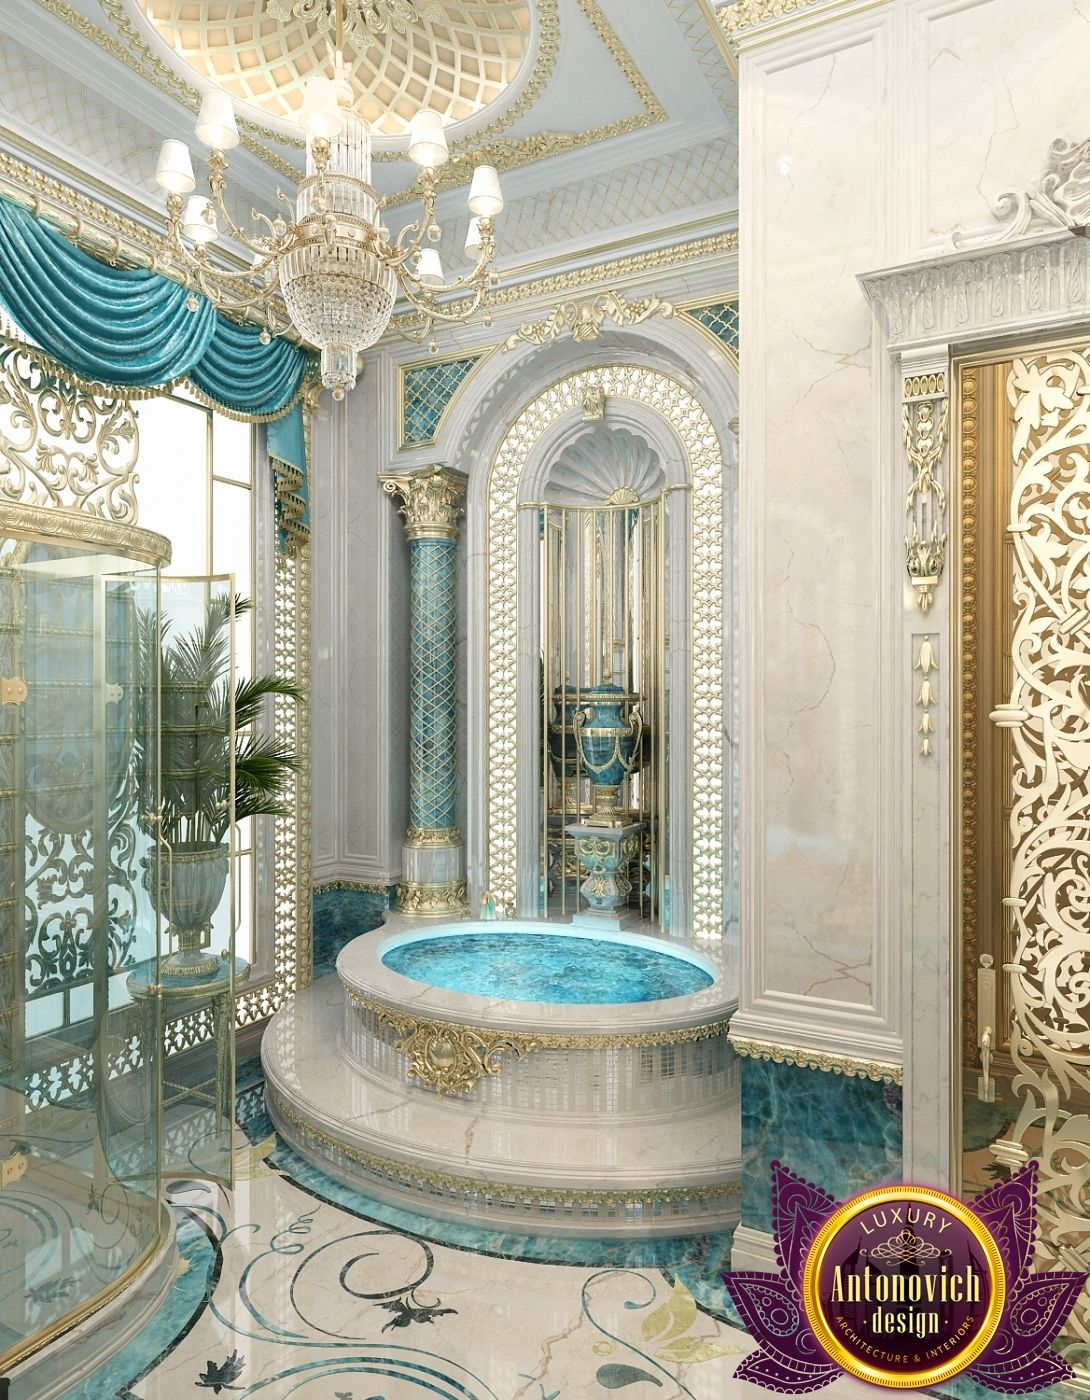 Bathroom Design in Dubai, The best interior Design bathroom, Photo on minecraft greek builds, minecraft greek style, minecraft greek details, minecraft insects, minecraft greek architecture,